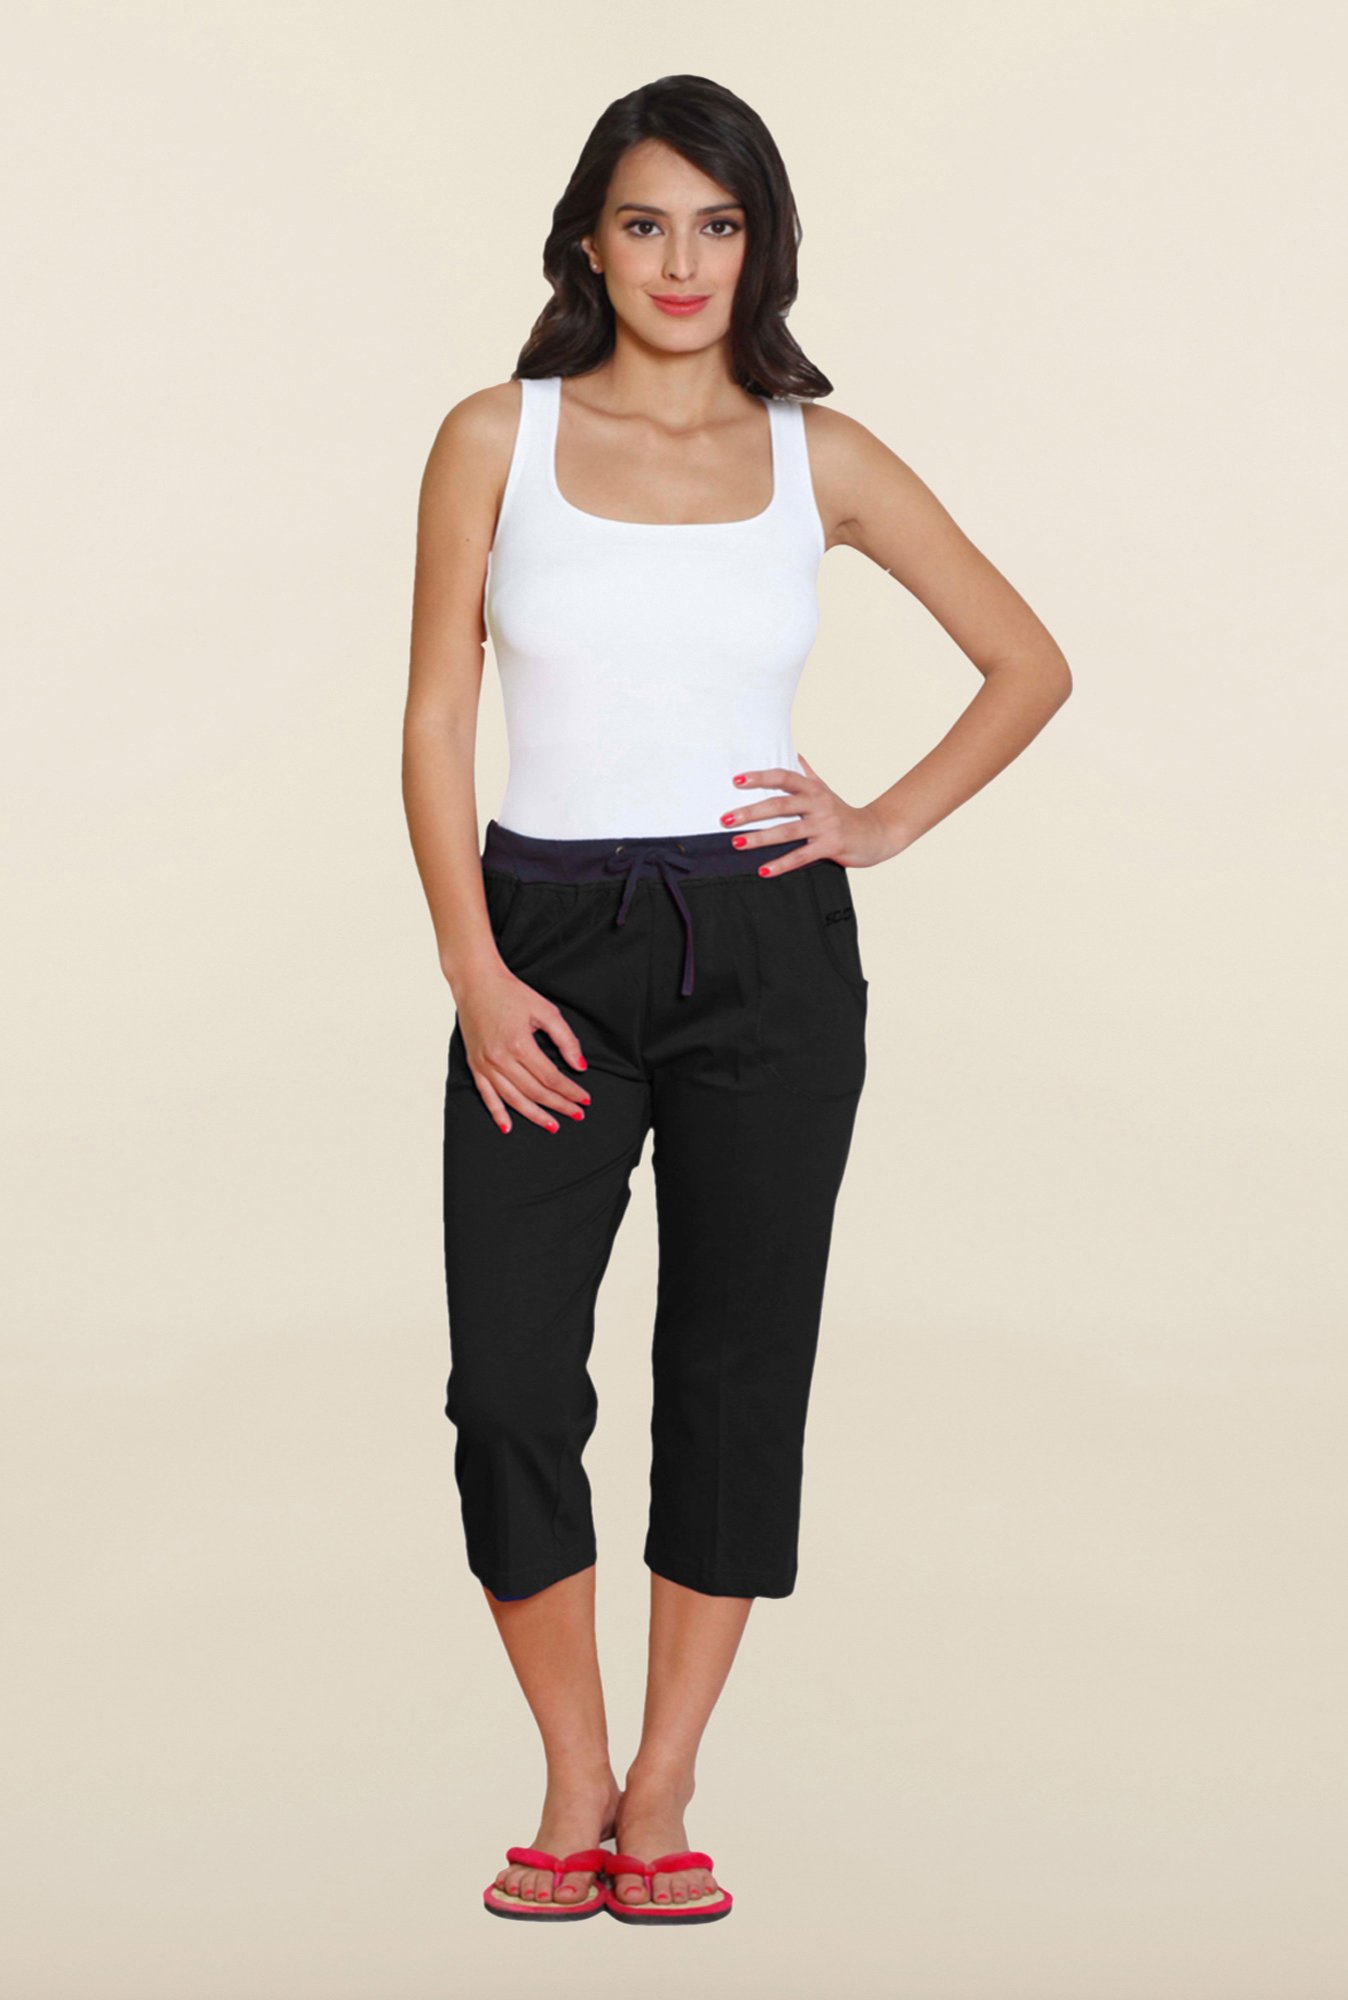 Sweet Dreams Jet Black Cotton Capri